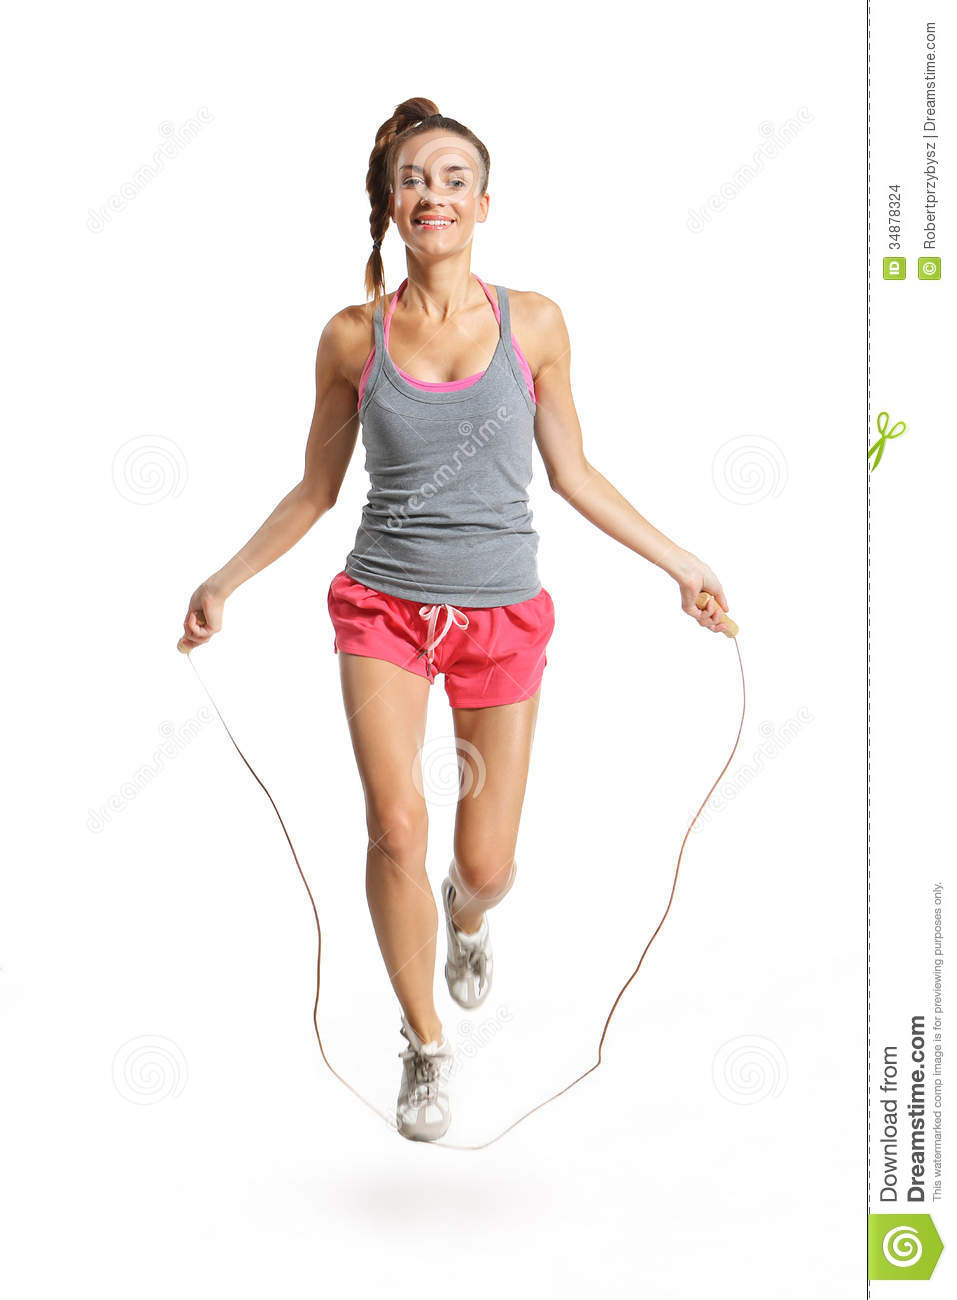 Energetic Woman Jumping Rope Stock Photo - Image: 34878324